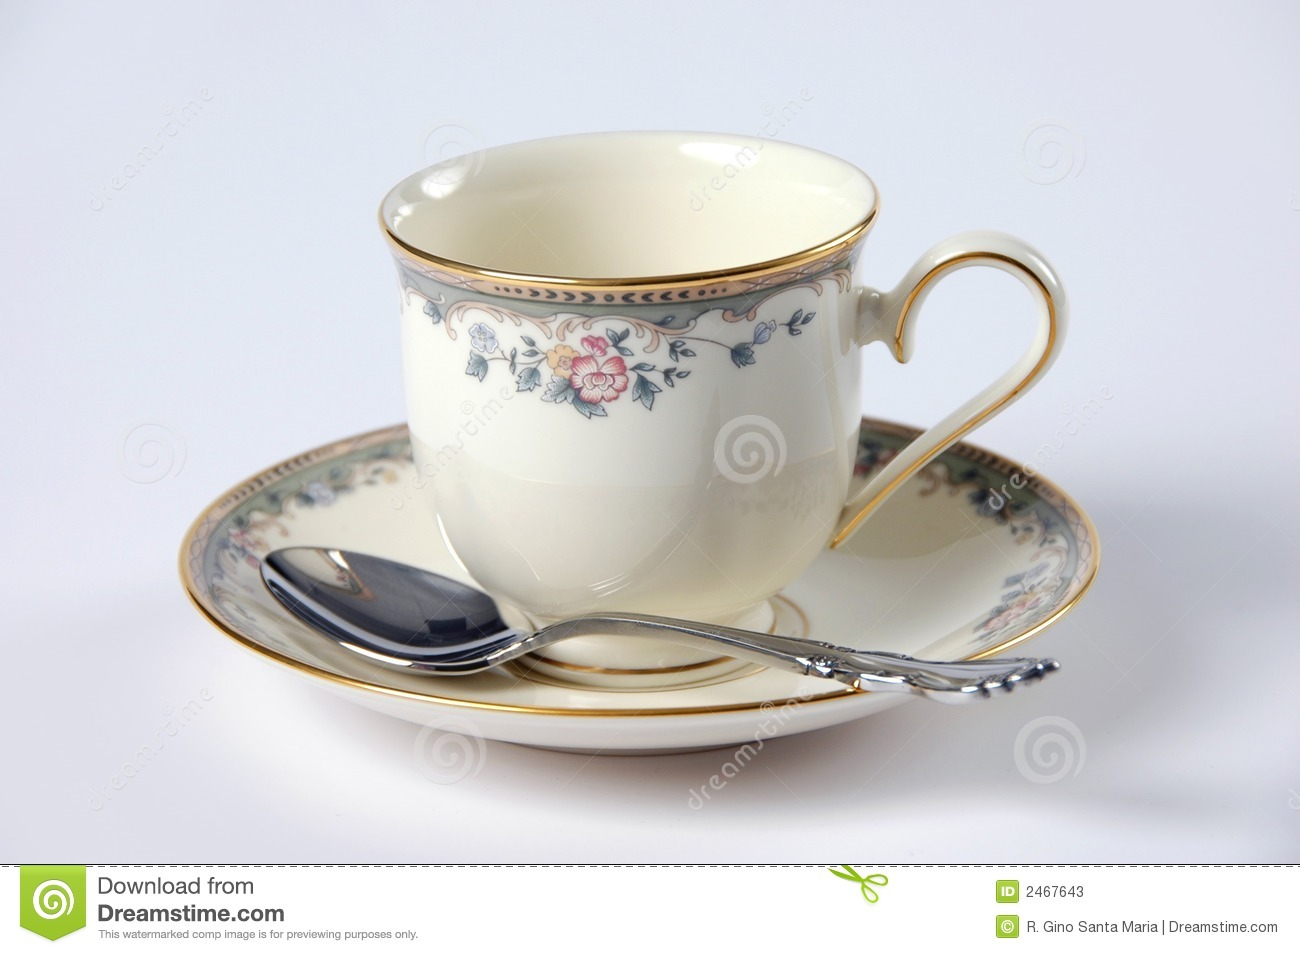 Fine China cup with saucer and spoon over a white background.